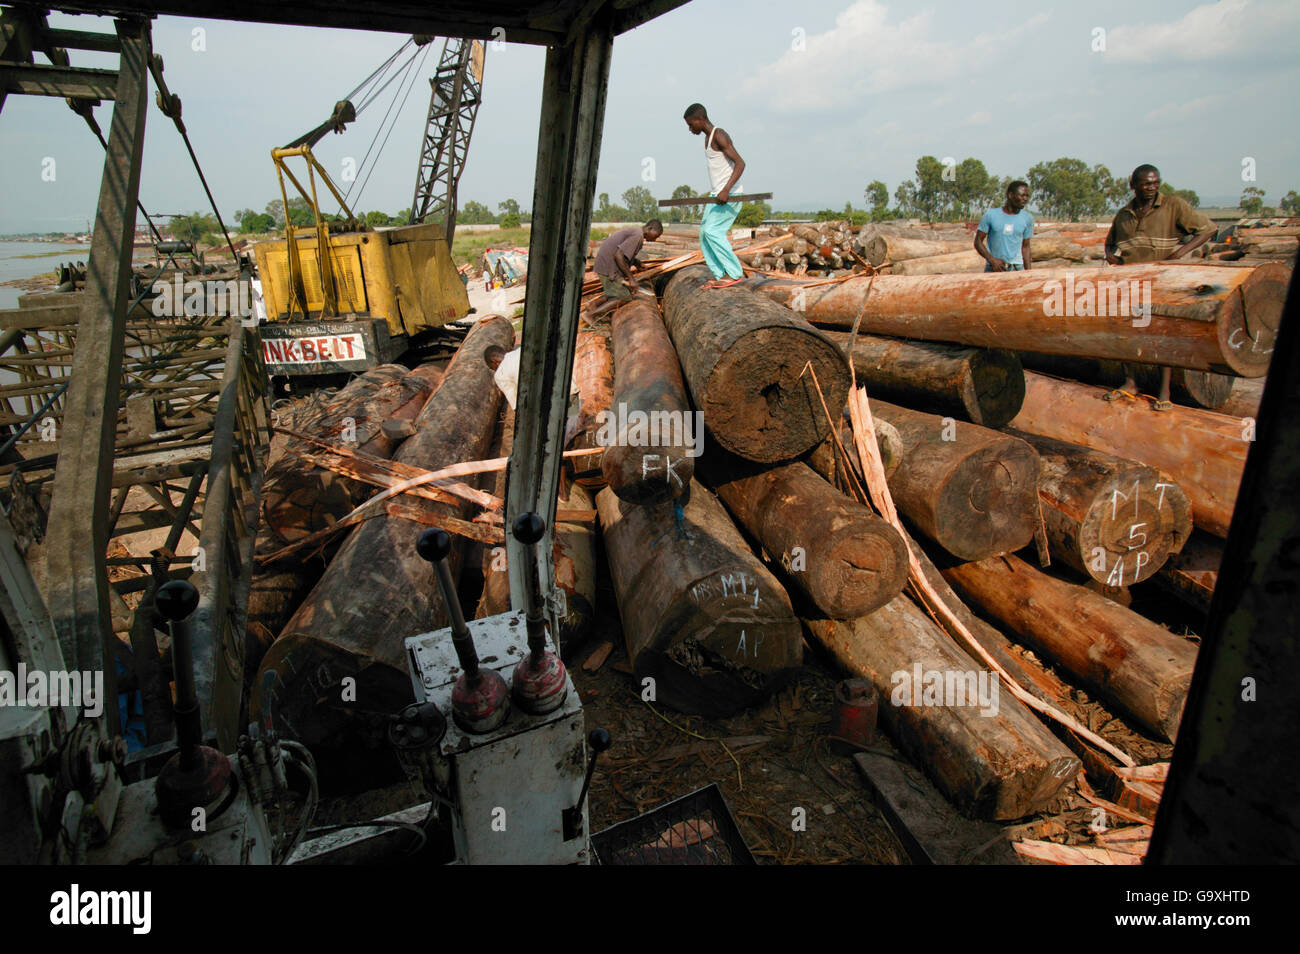 Illegal logged timber, Kinshasha, Democratic Republic of the Congo. Non-ex - Stock Image